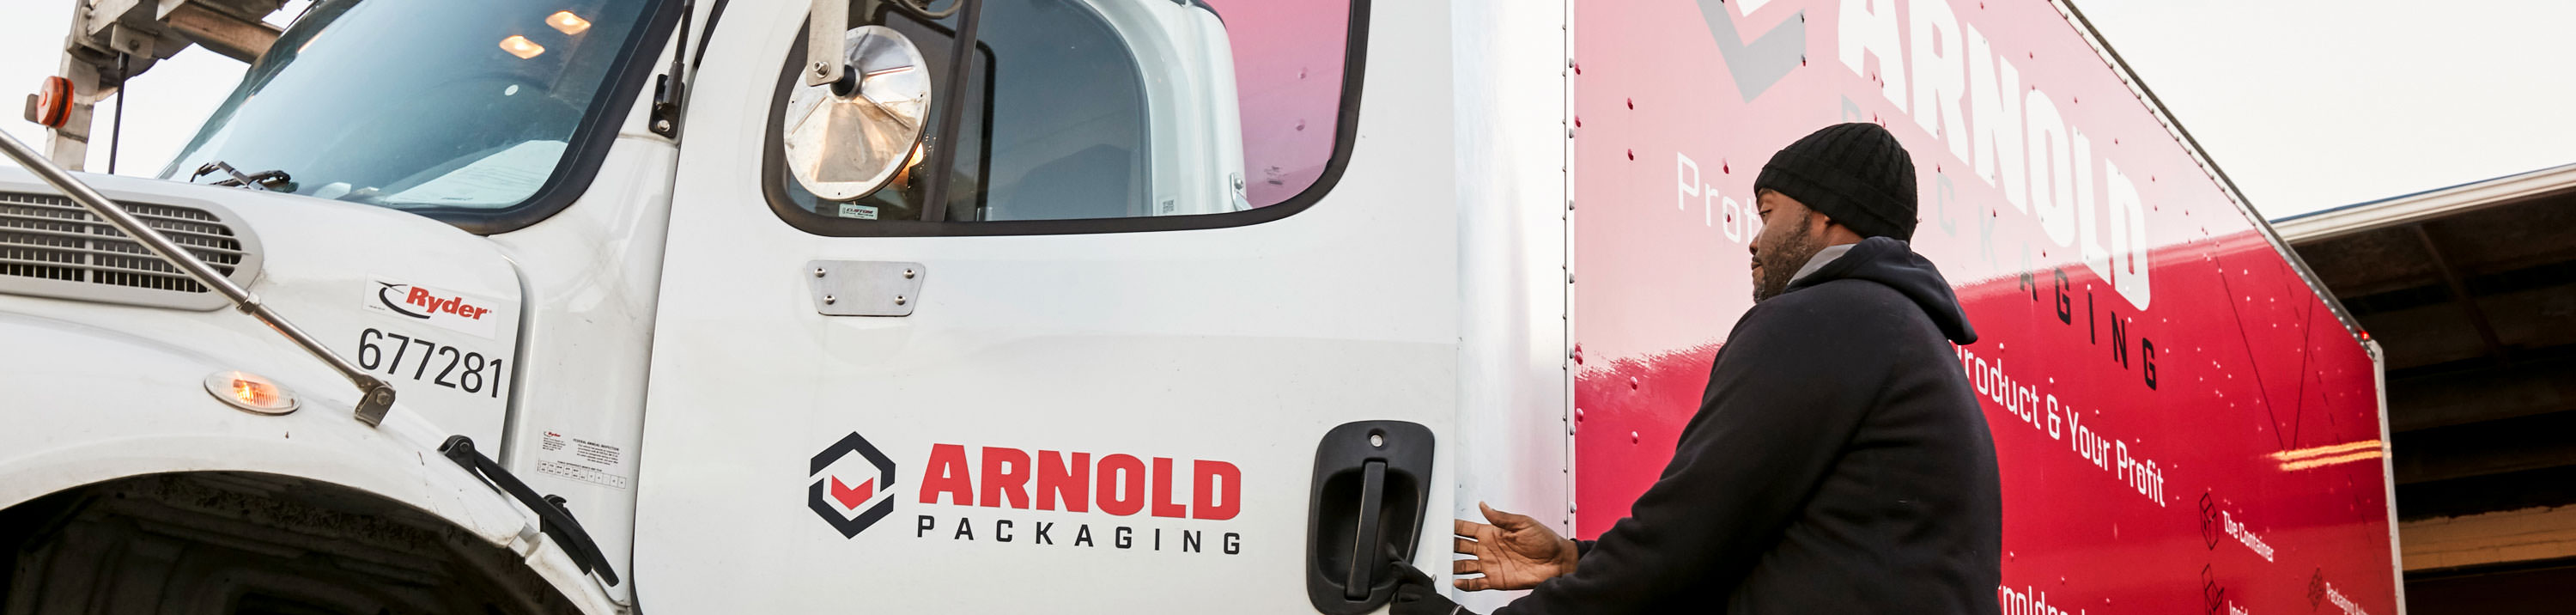 Arnold Packaging - Faces of Arnold Packaging